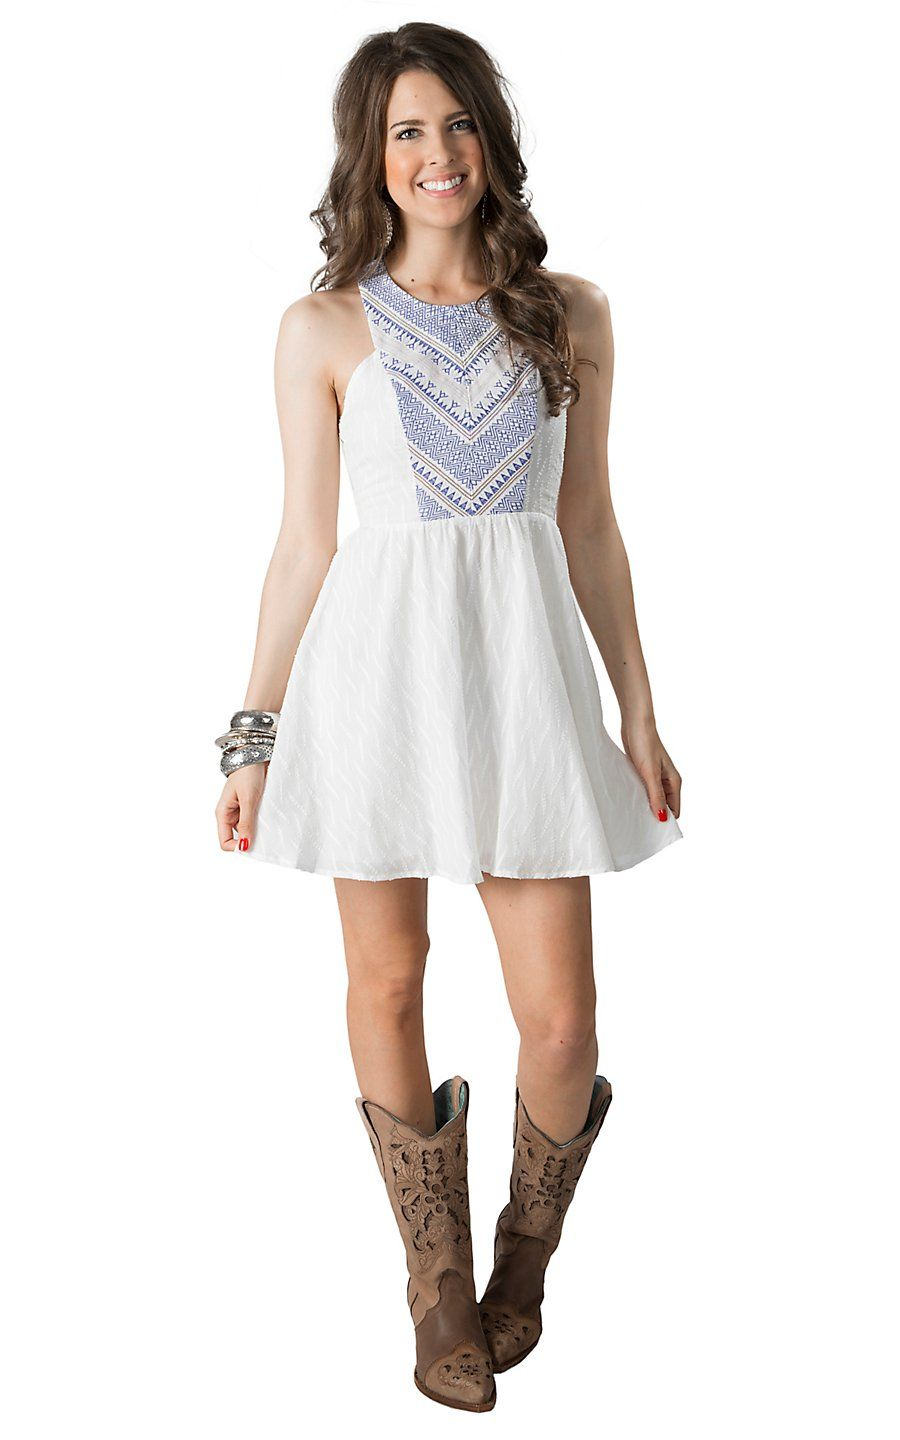 Flying Tomato Women S White With Blue Embroidery Racer Back Sleeveless Dress Cowgirl Dresses Country Outfits Women Western Dresses For Women [ 1440 x 900 Pixel ]